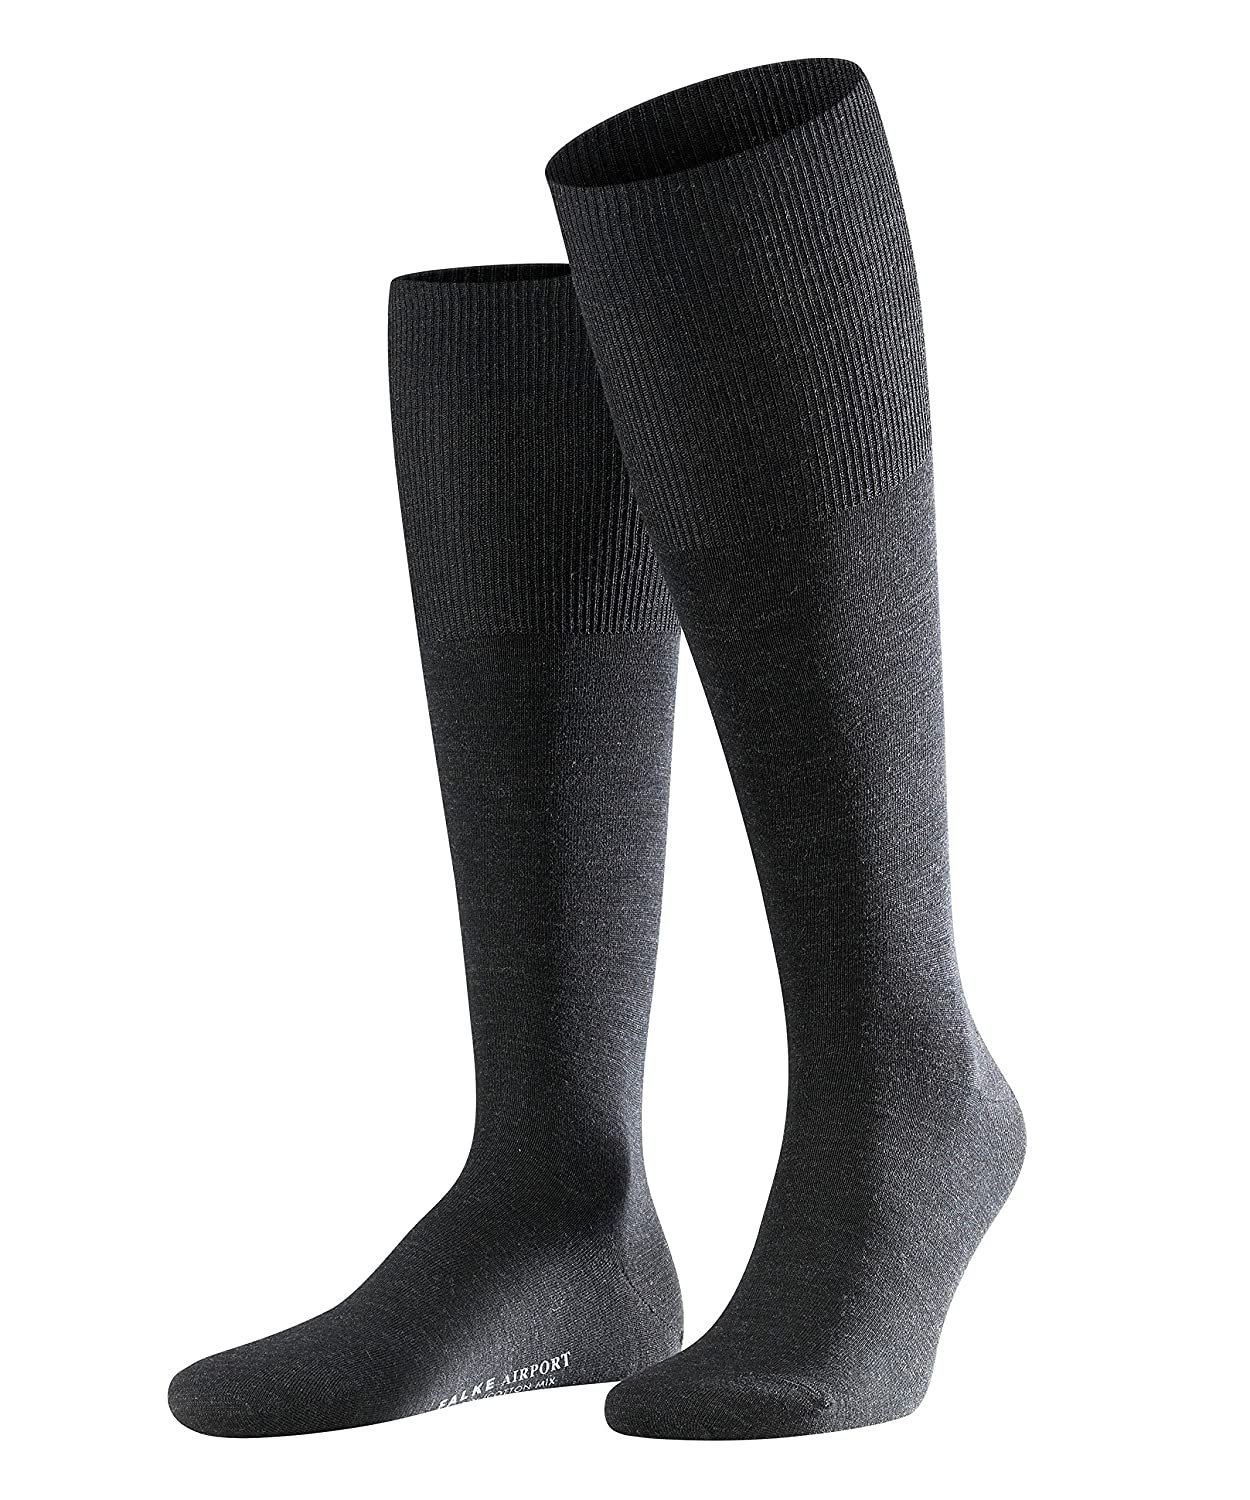 Virgin Wool//Cotton Blend ideal for any occasion UK sizes 5.5-14 EU 39-50 FALKE Men Airport Knee-High Socks thermo-regulating Warm Multiple Colours 1 Pair